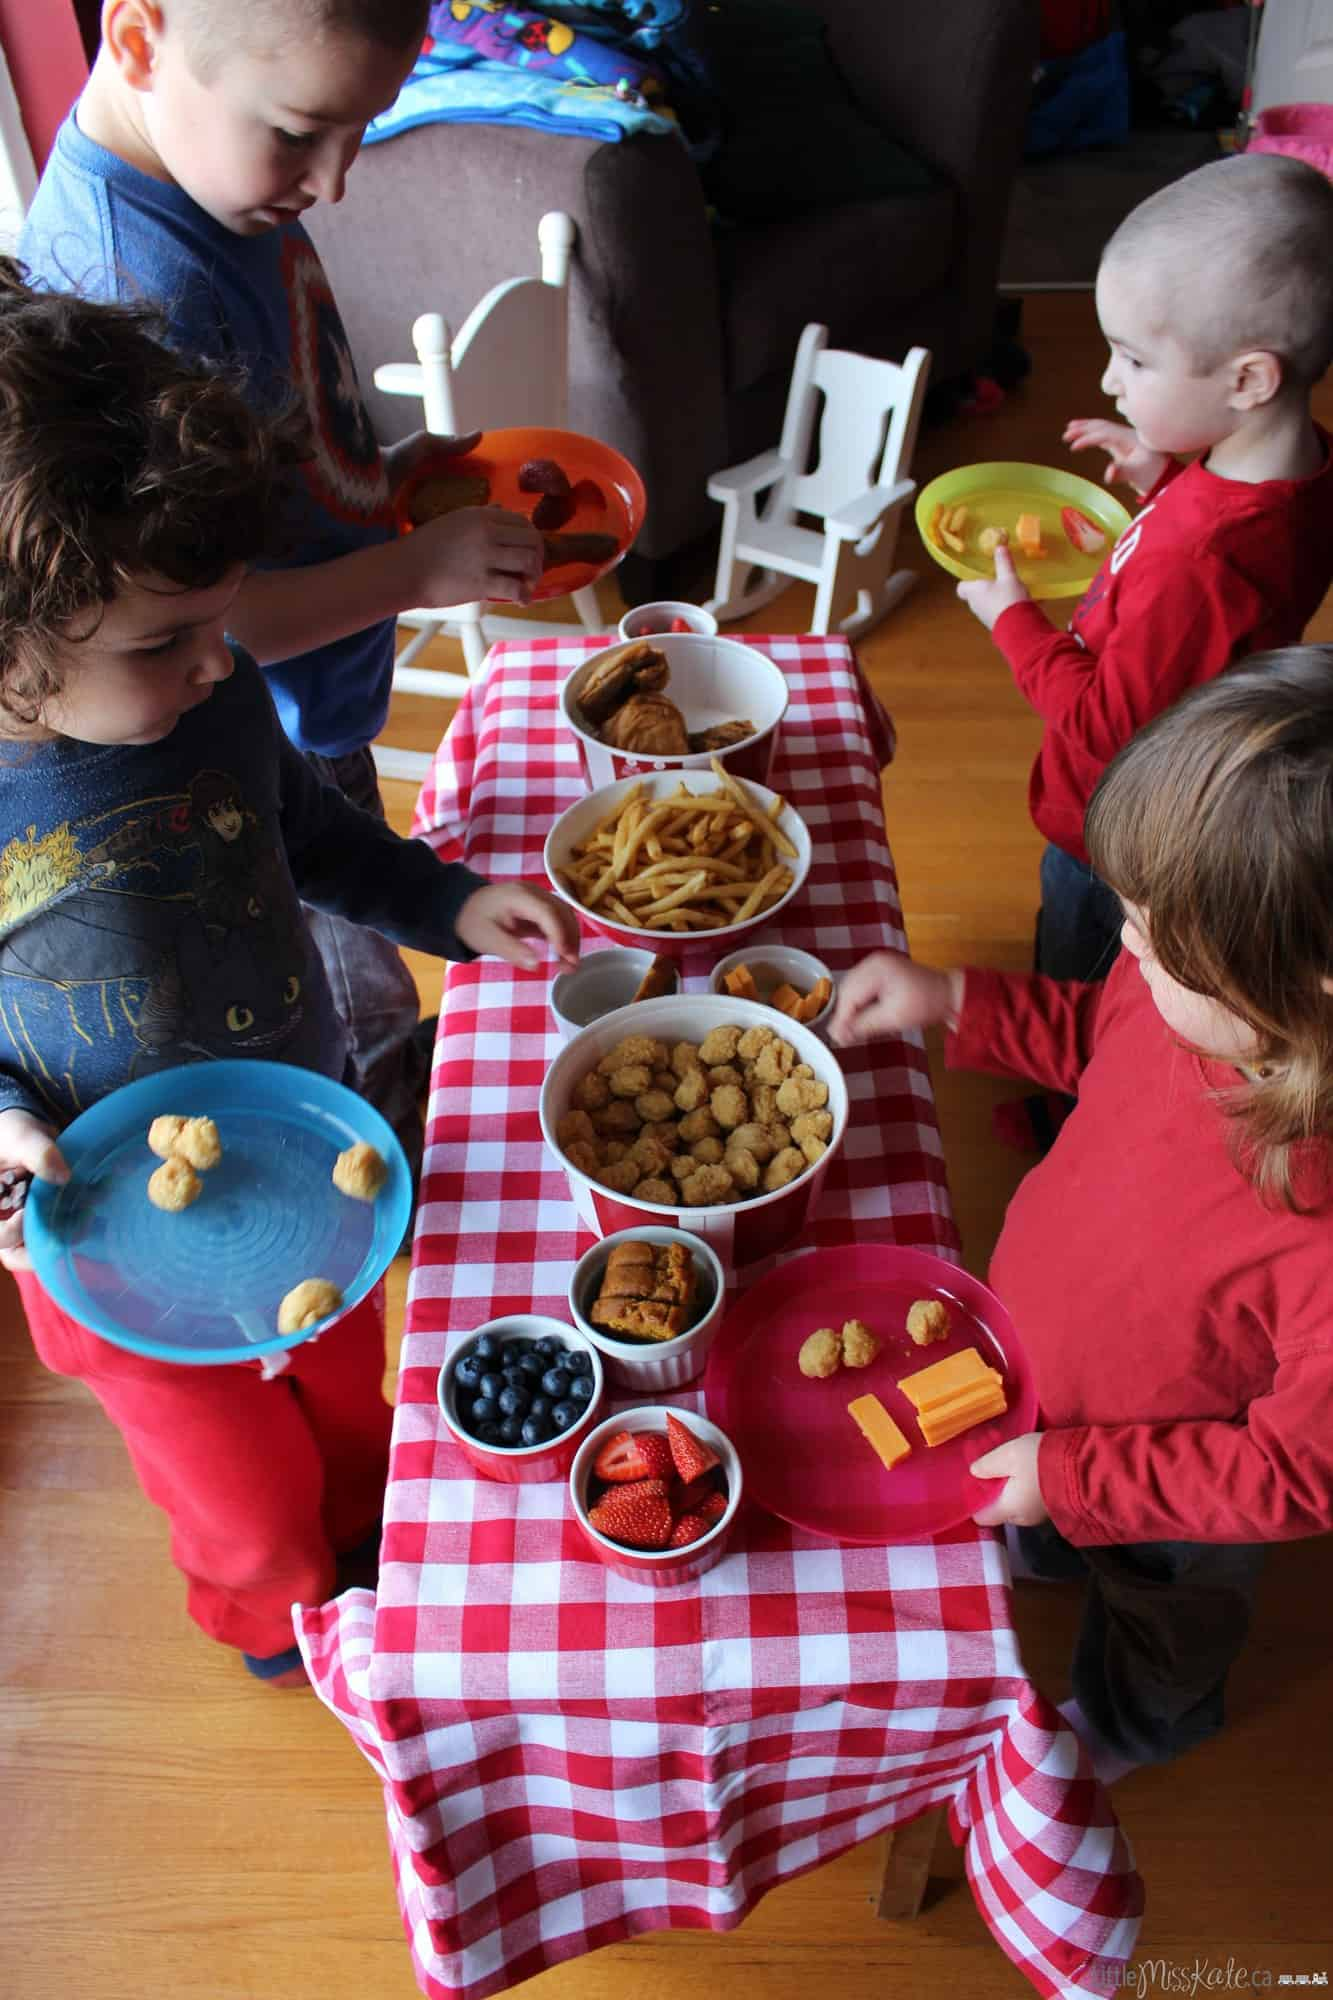 Family Traditions: 10 Ideas You Can Start Anytime indoor picnic